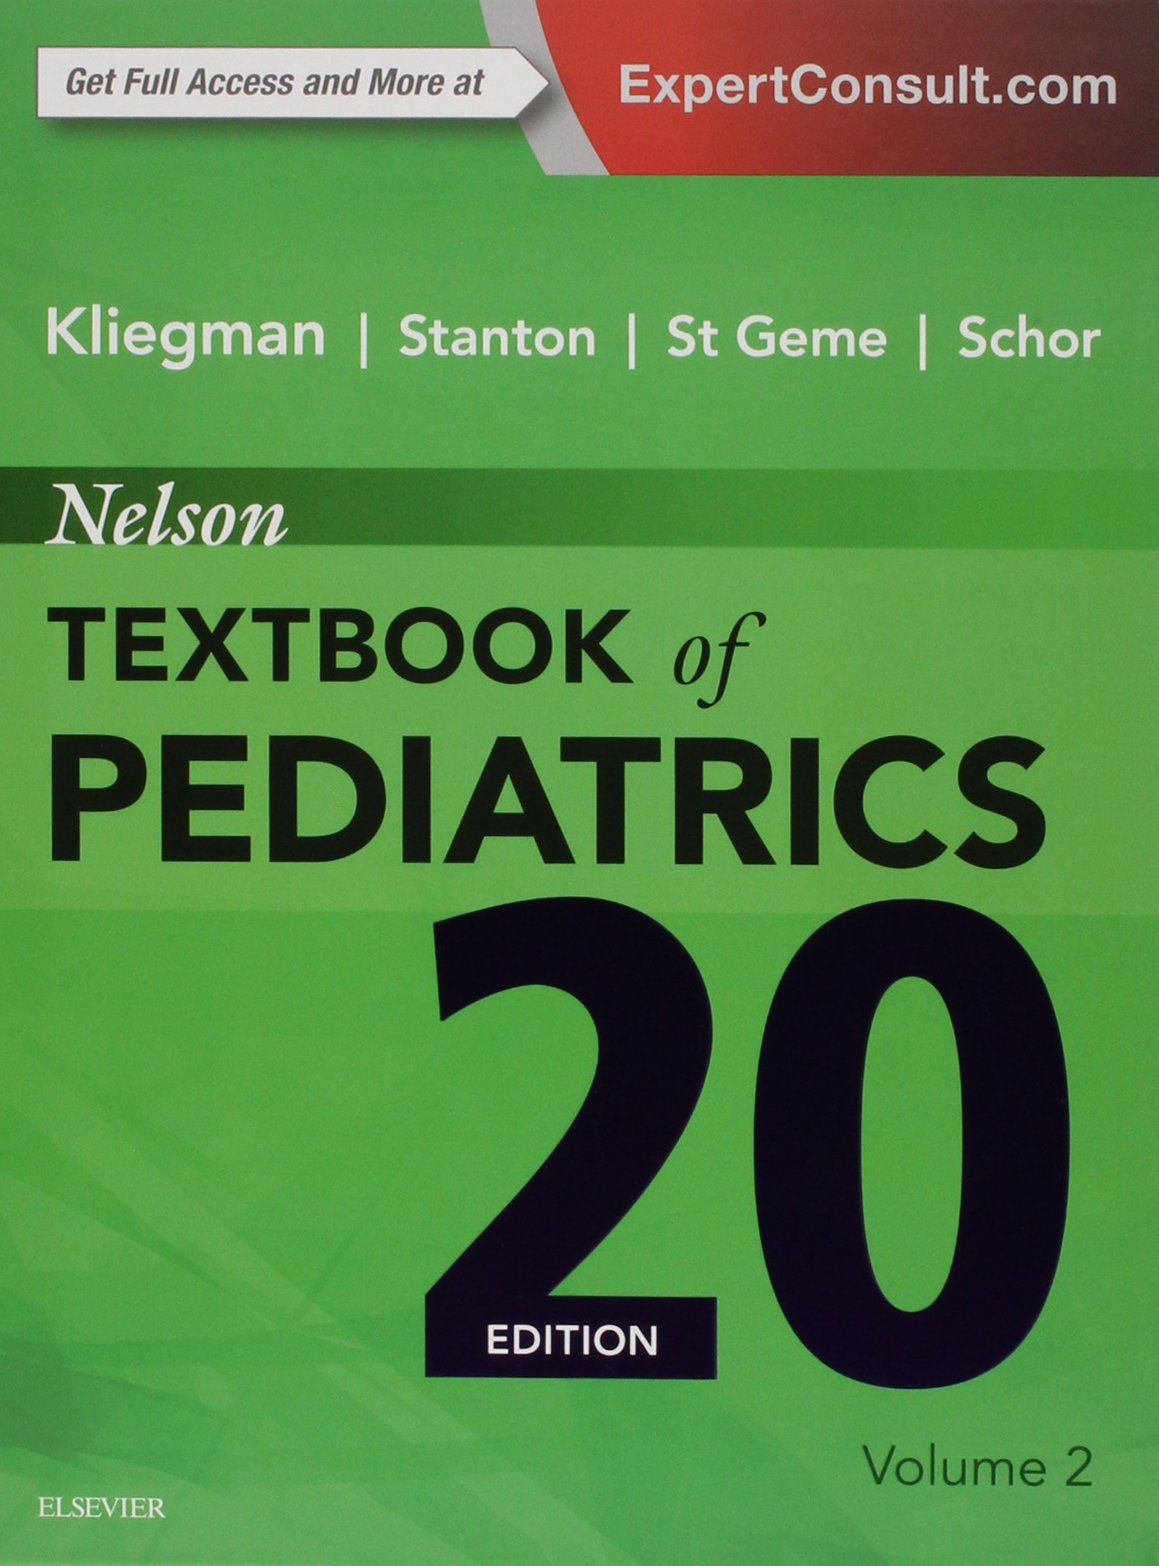 Top Pediatric Textbooks for Diagnosis and Treatment